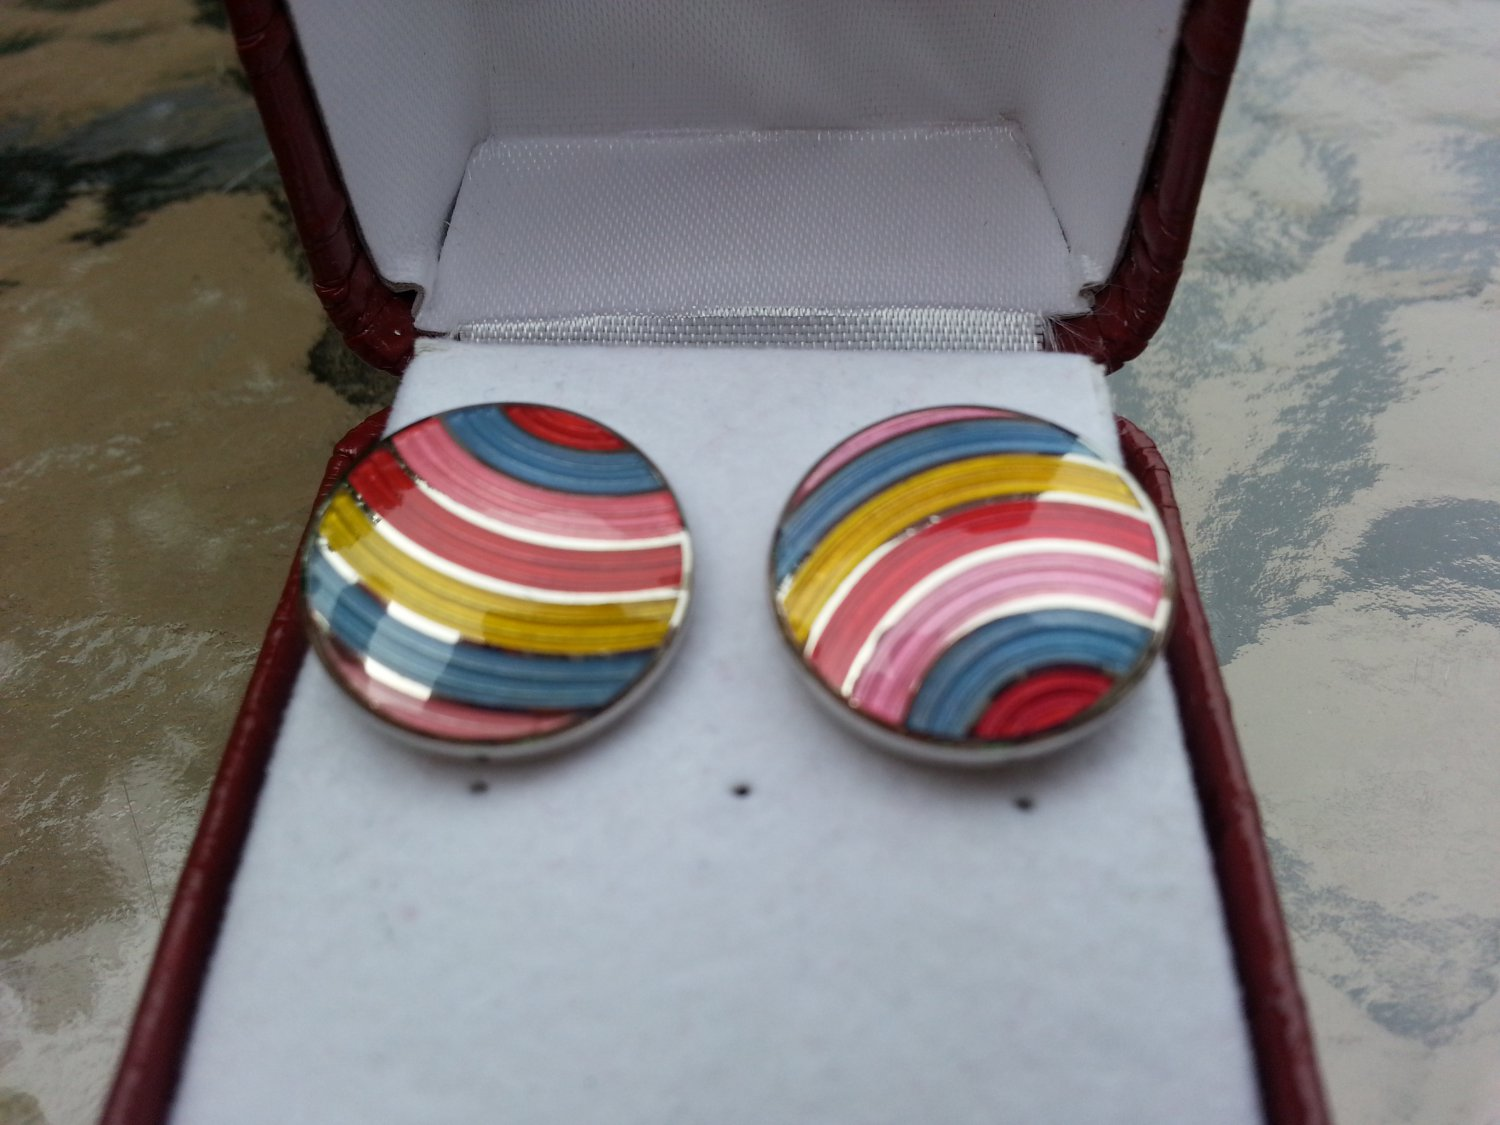 Pink, Blue, Red & Yellow Stripe Circle Enamel Cufflinks Charles Tyrwhitt!